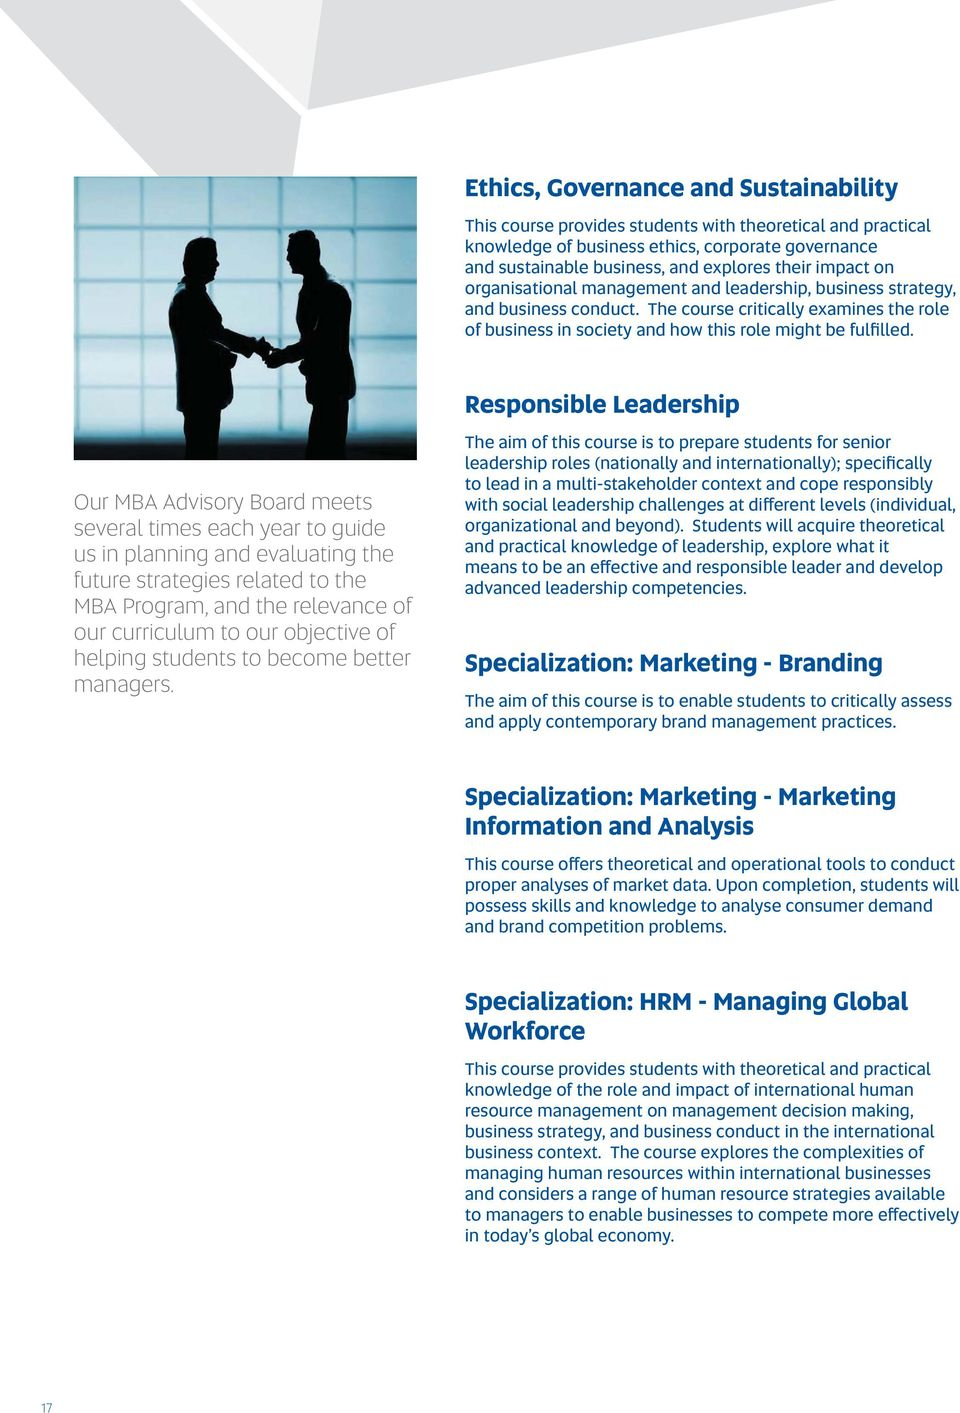 Responsible Leadership Our MBA Advisory Board meets several times each year to guide us in planning and evaluating the future strategies related to the MBA Program, and the relevance of our